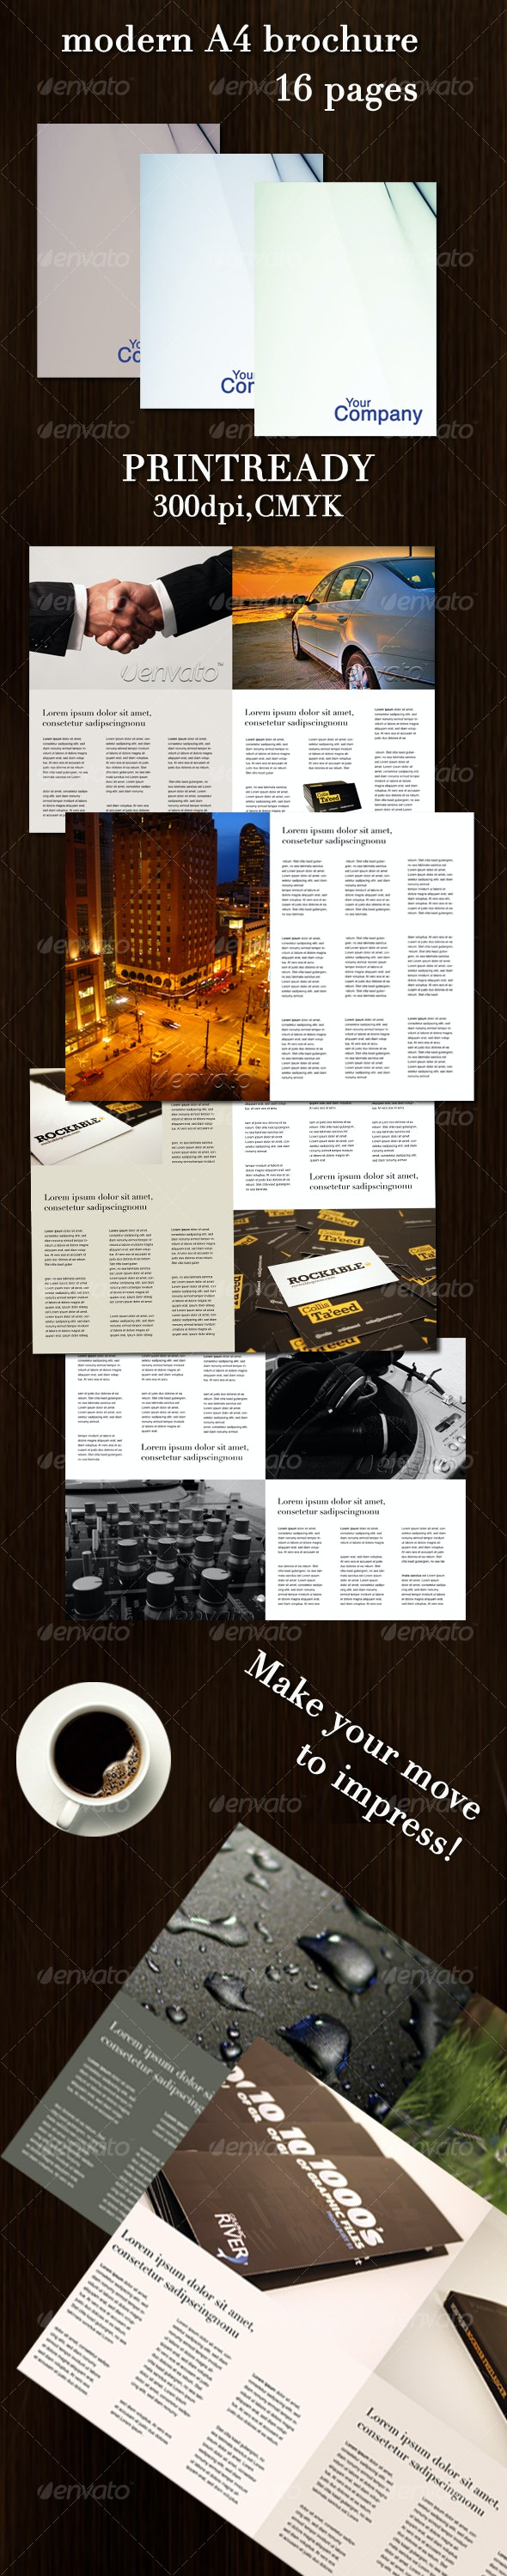 16 page A4 modern brochure - Corporate Brochures